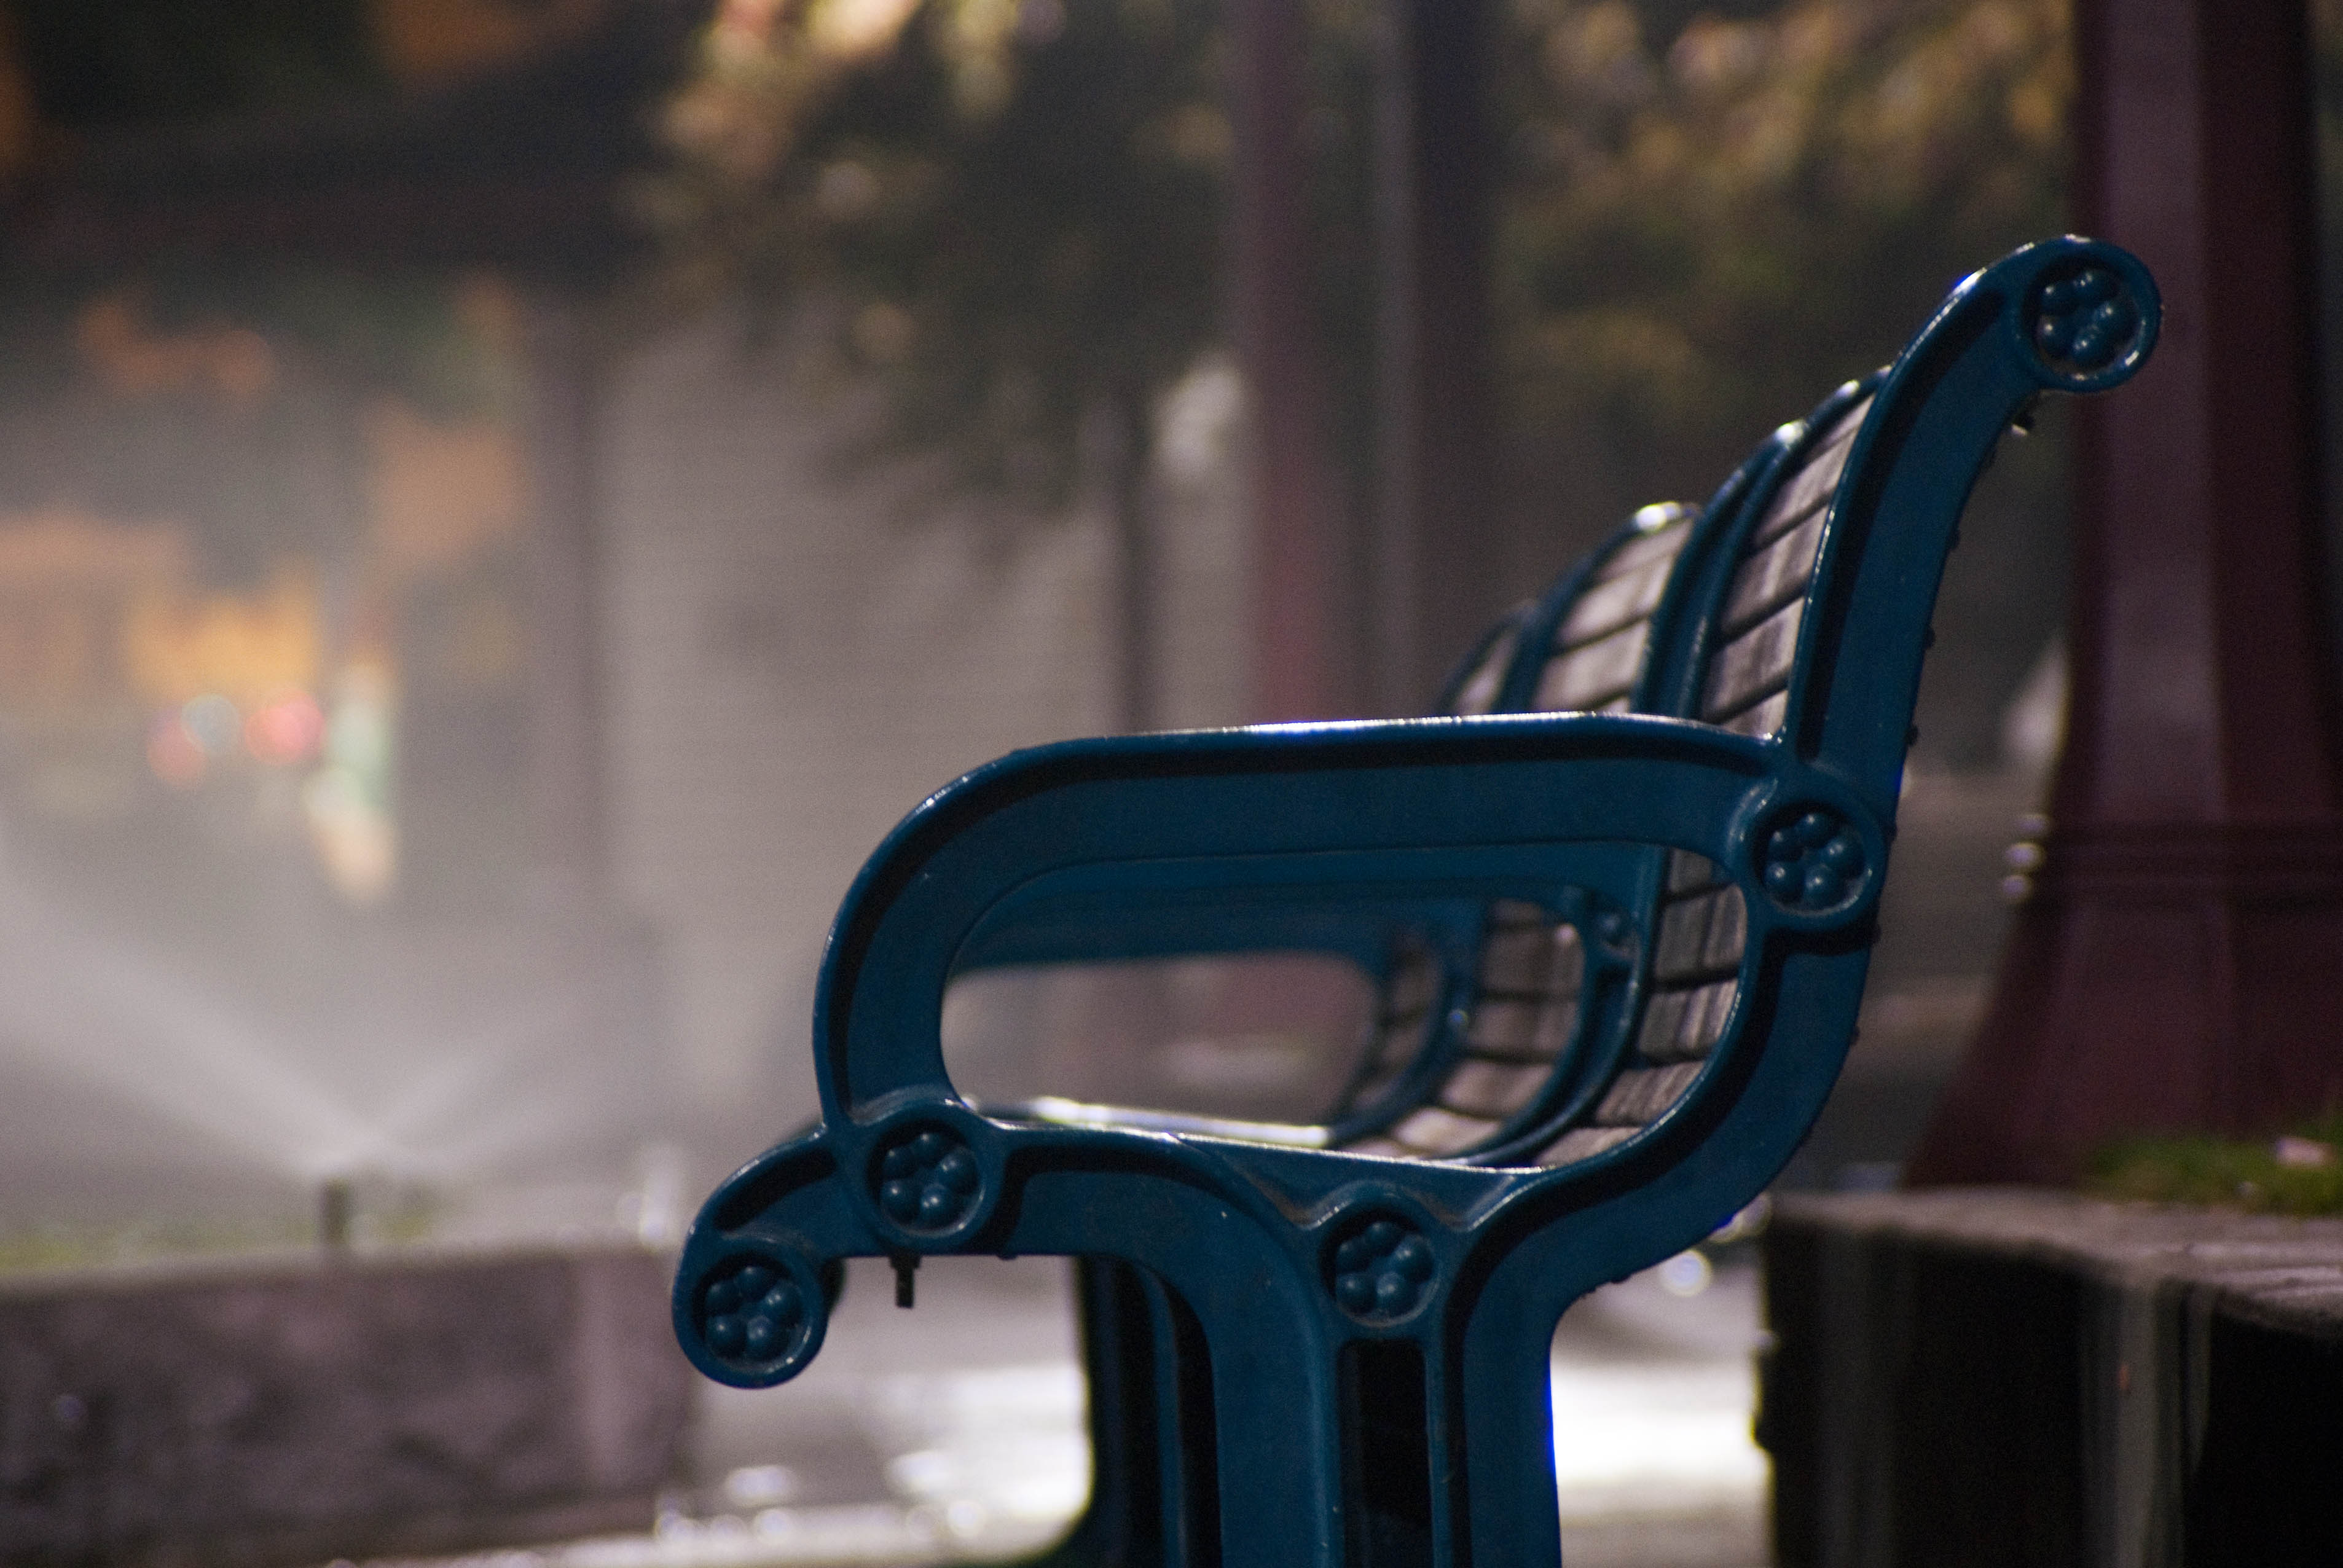 12862 Portsmouth Square benches with water sprinkler mist